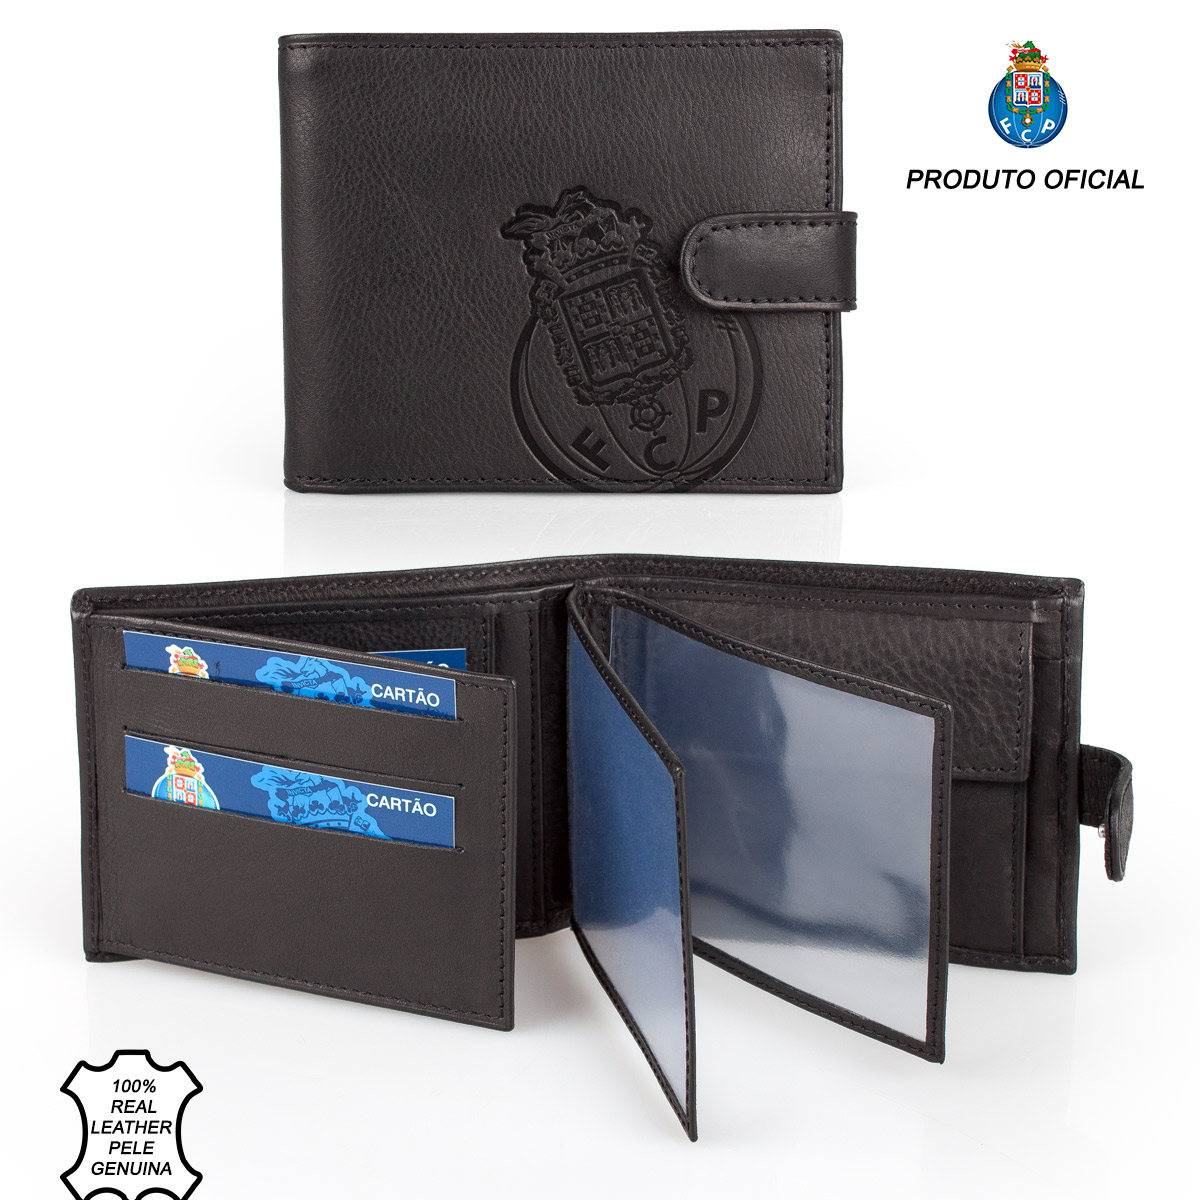 Leather Wallet Tab F.C. PORTO Black – image 1